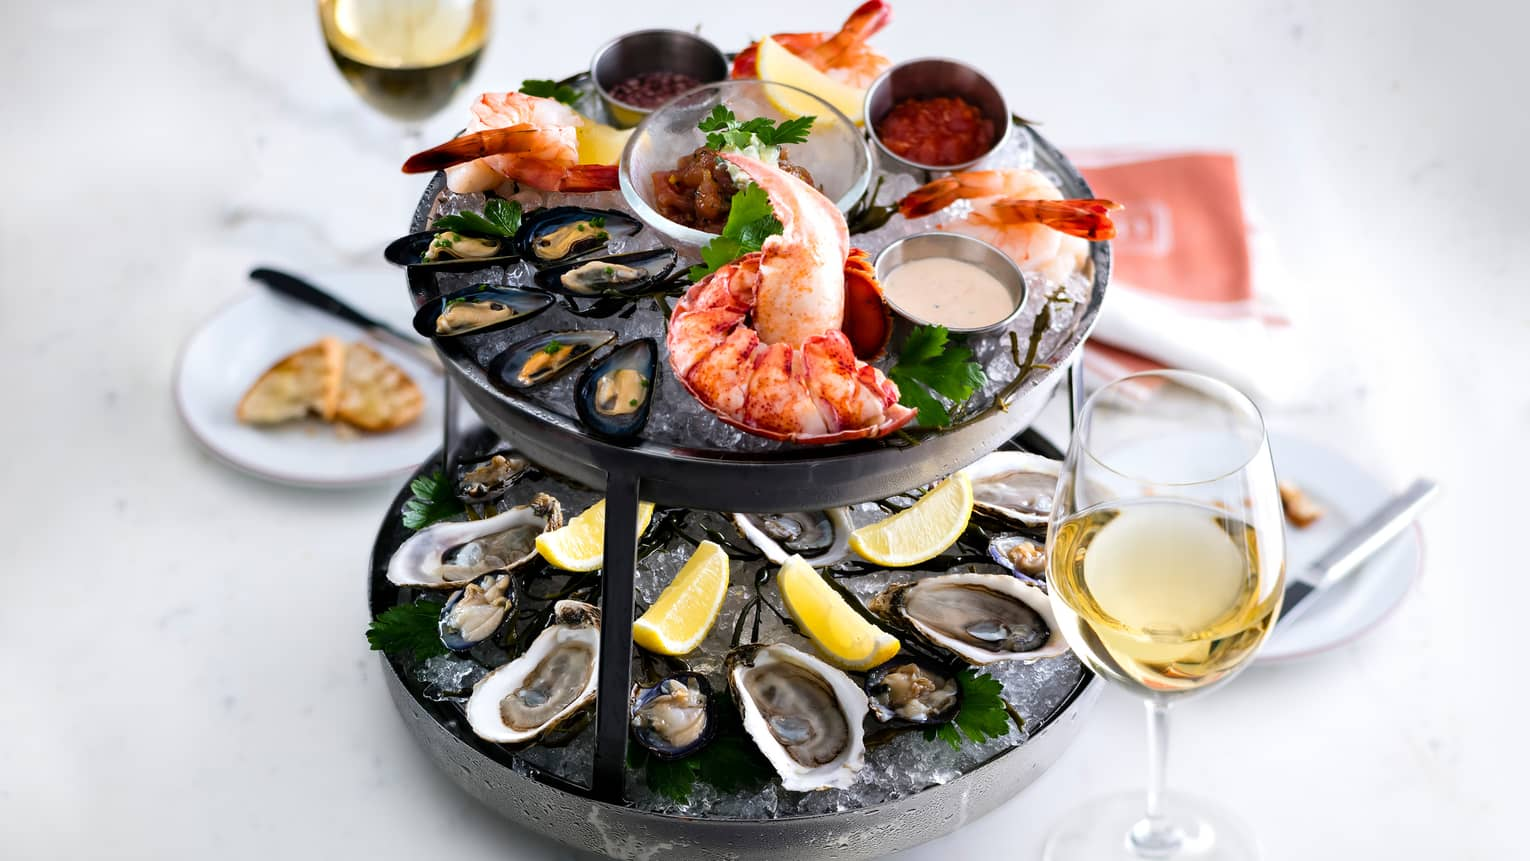 Two-tiered platter with fresh lobsters, oysters, mussels, lemon on ice, glass of white wine